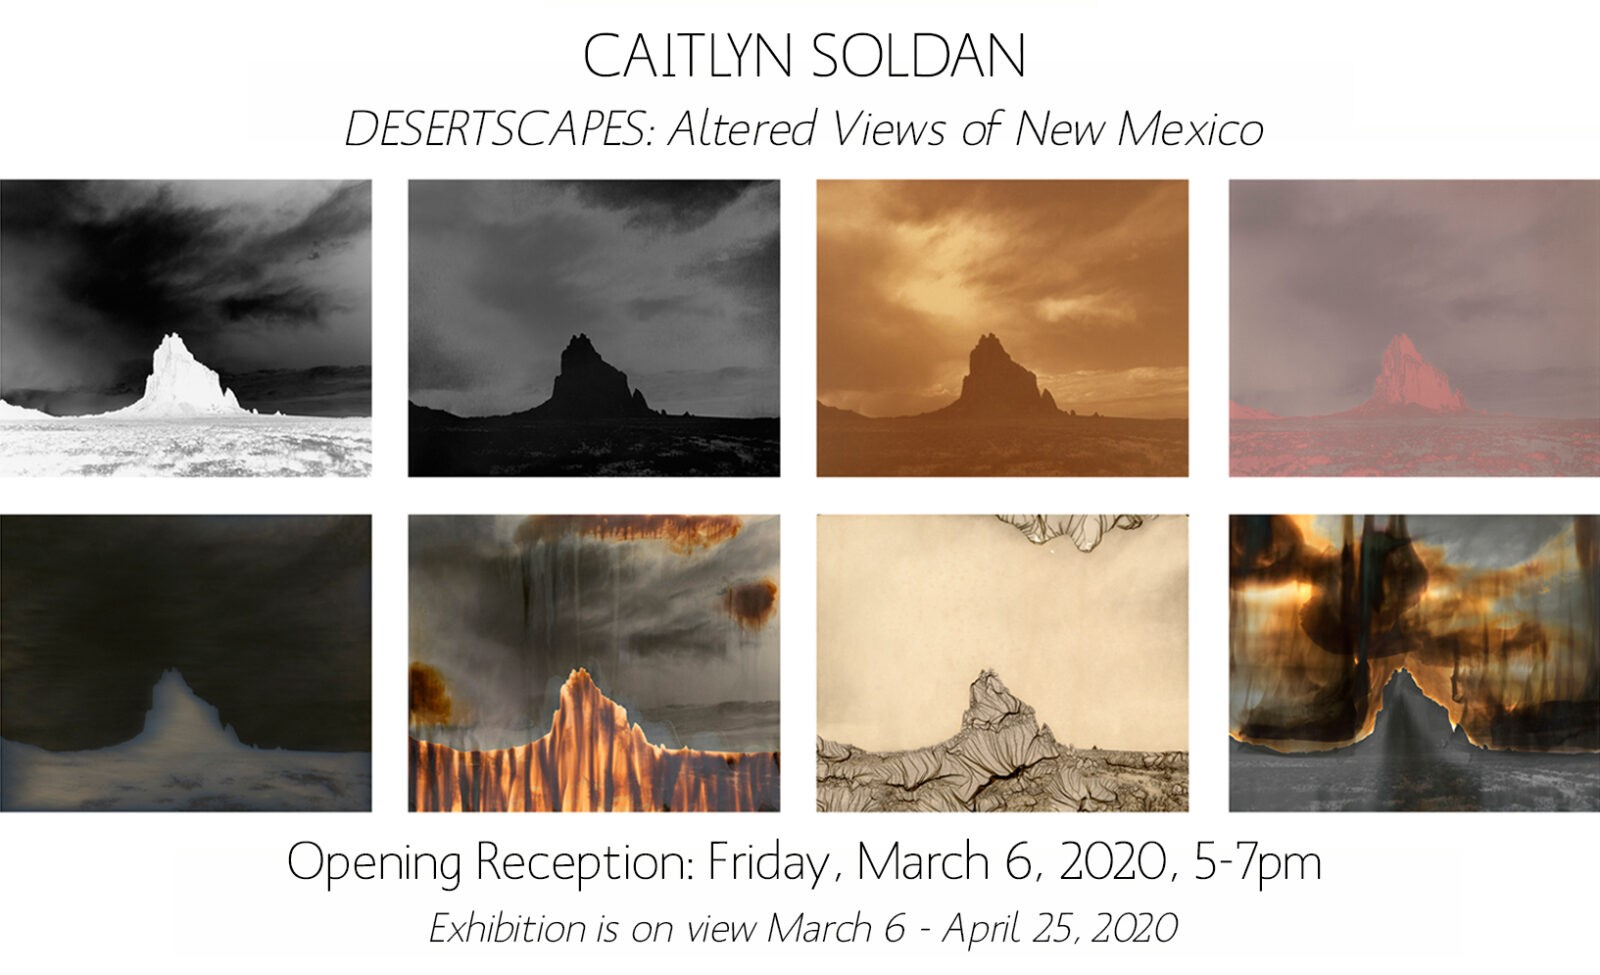 POSTCARD IMAGE FOR CAITLYN SOLDAN'S EXHIBITION OPENING ON MARCH 6, 2020 5-7PM